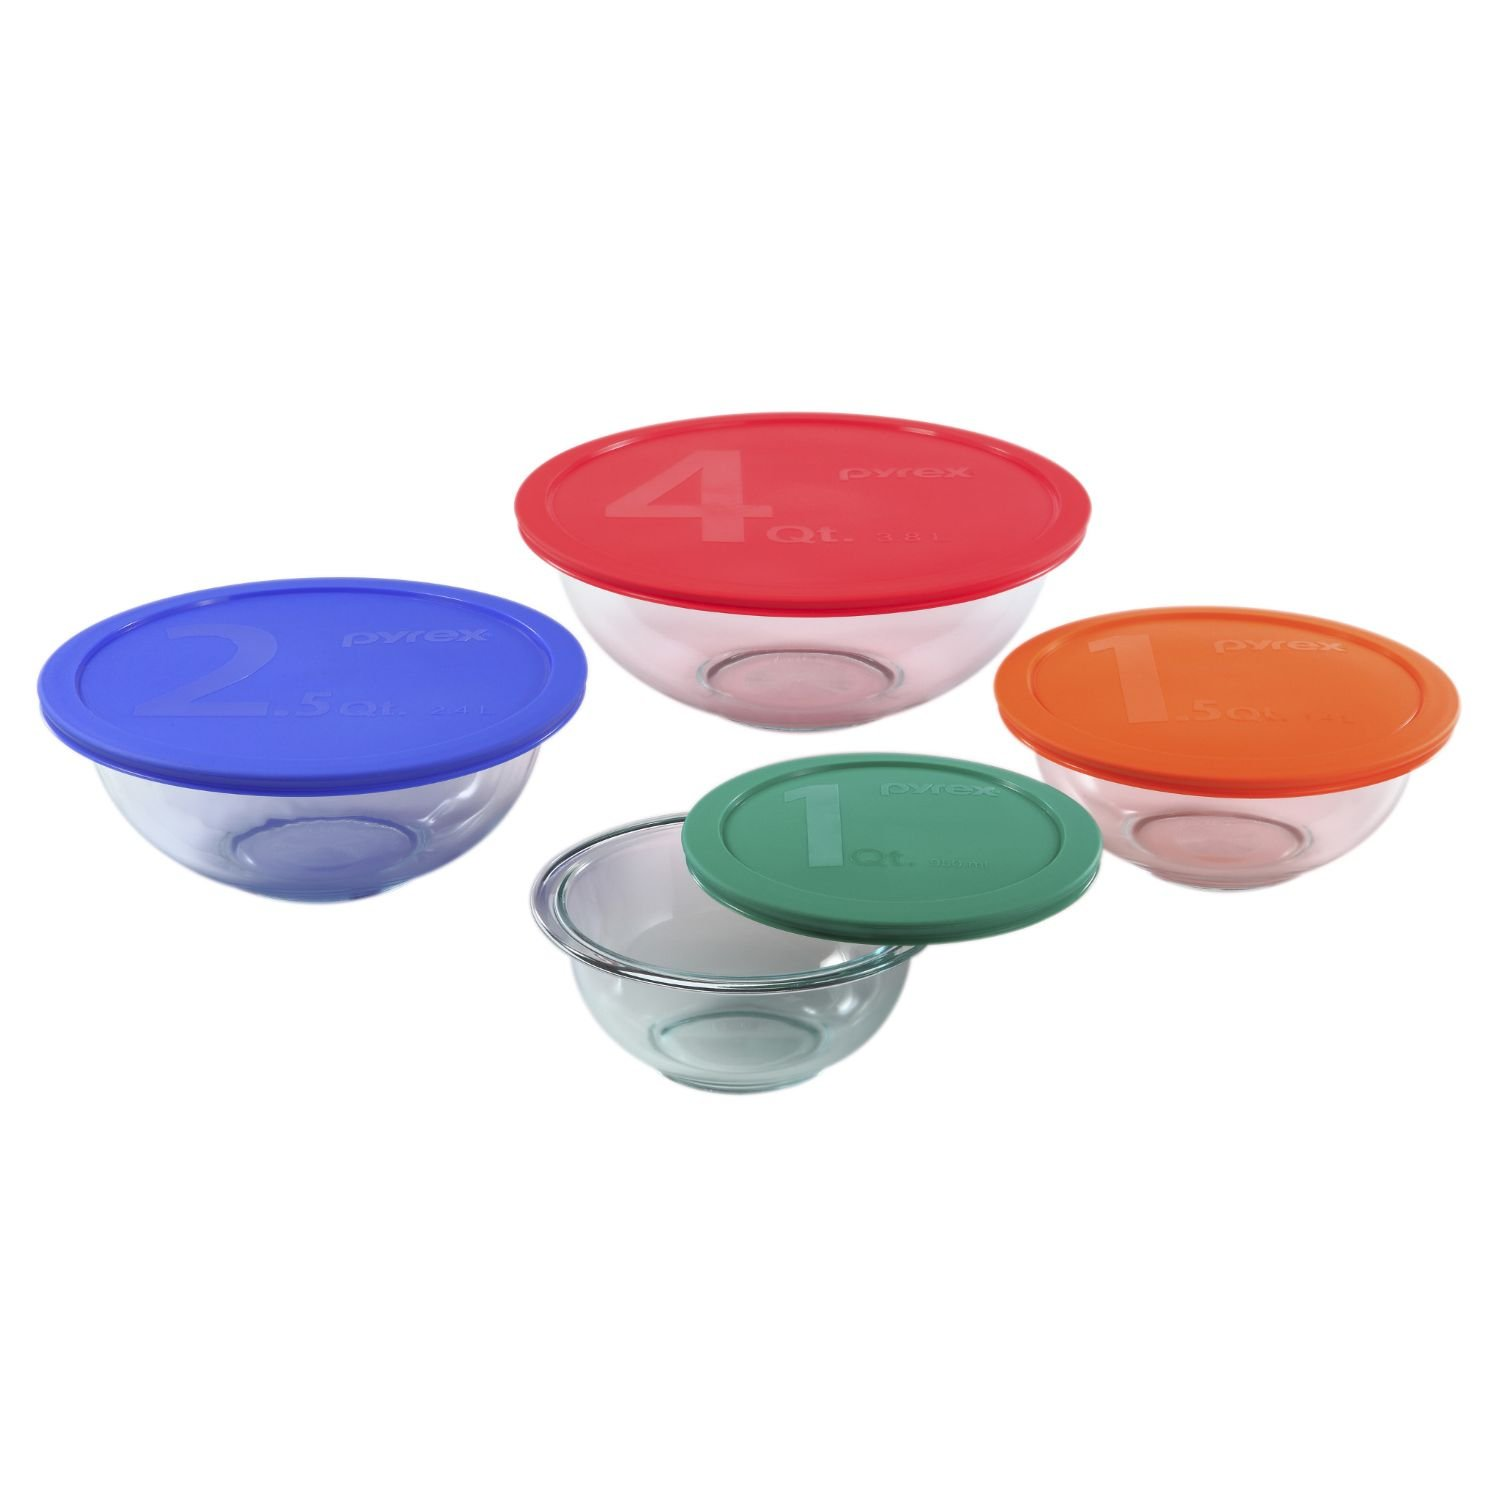 Pyrex Smart Essentials Glass Bowl Set, 8-Pc